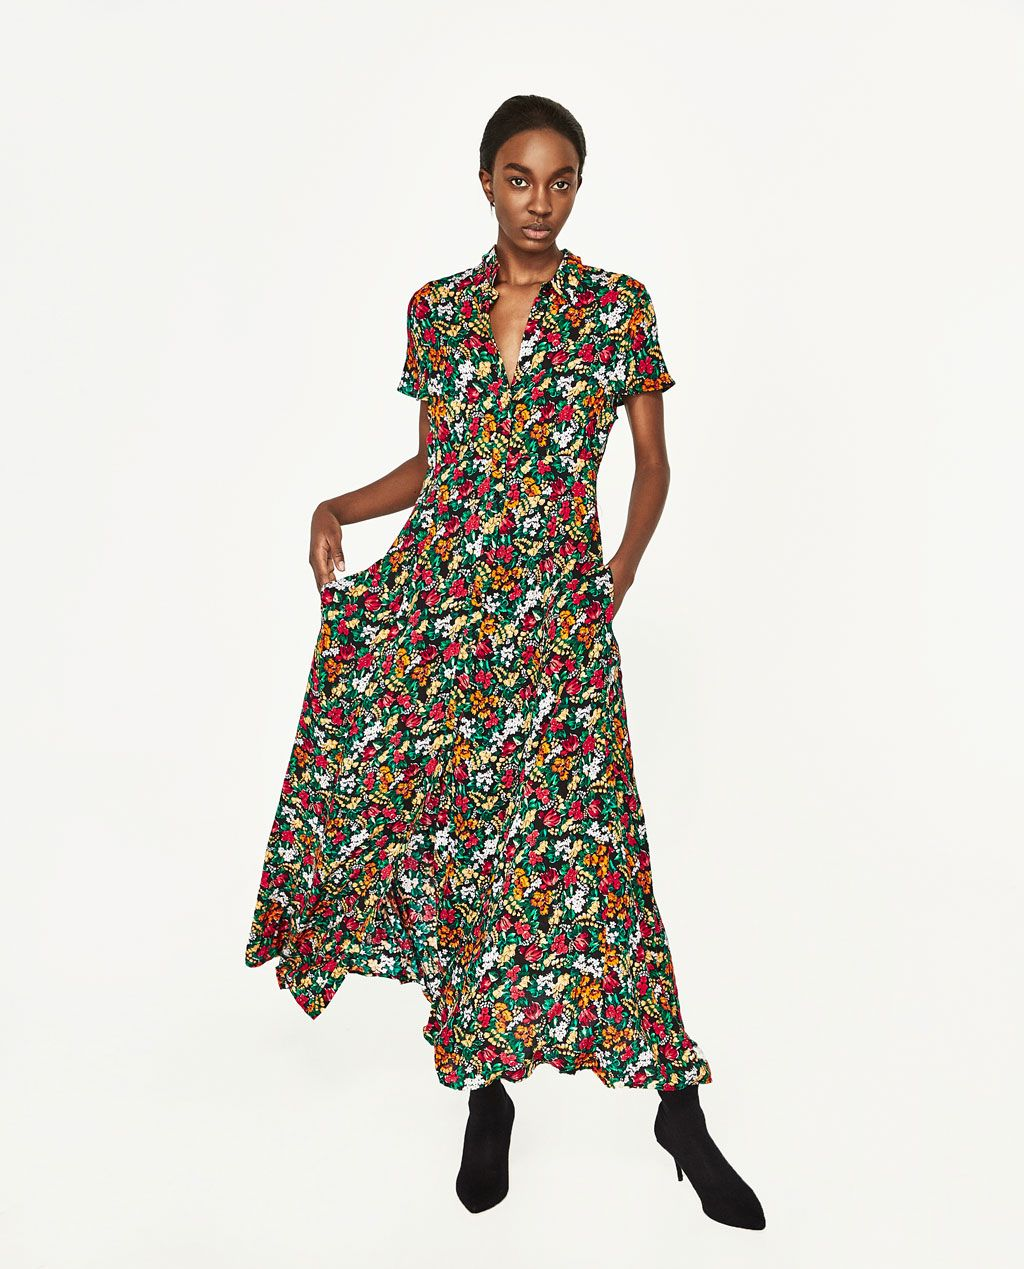 Zara woman floral print dress self expression pinterest zara woman floral print dress ombrellifo Image collections